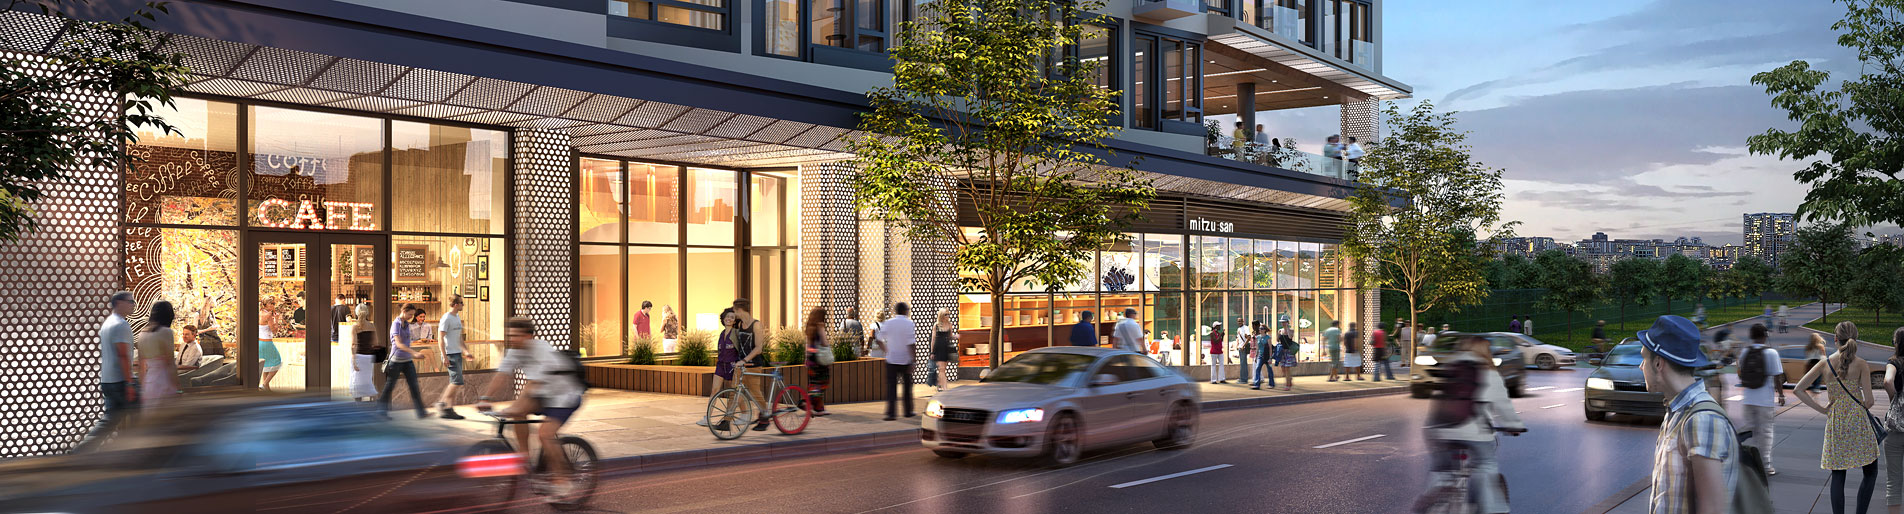 818016- Digital Photorealistic Architectural Renderings of Storm Living Exterior at Dusk for Zoning and Code Consulting Group